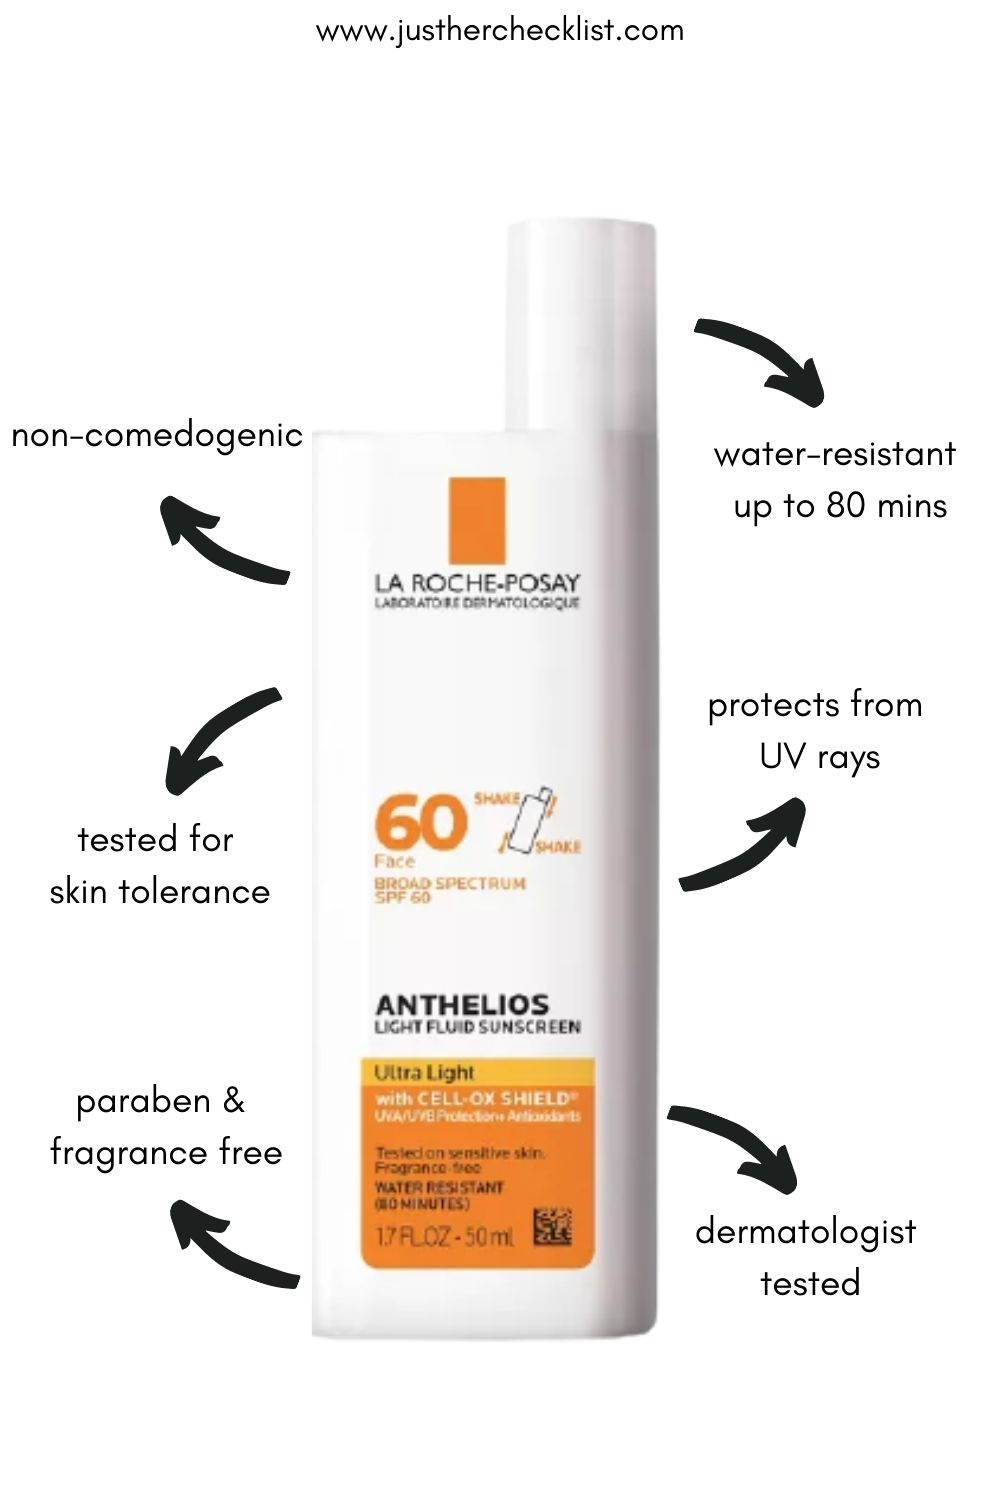 La-Roche Posay Anthelios 60 Face Sunscreen for Oily Skin SPF 60